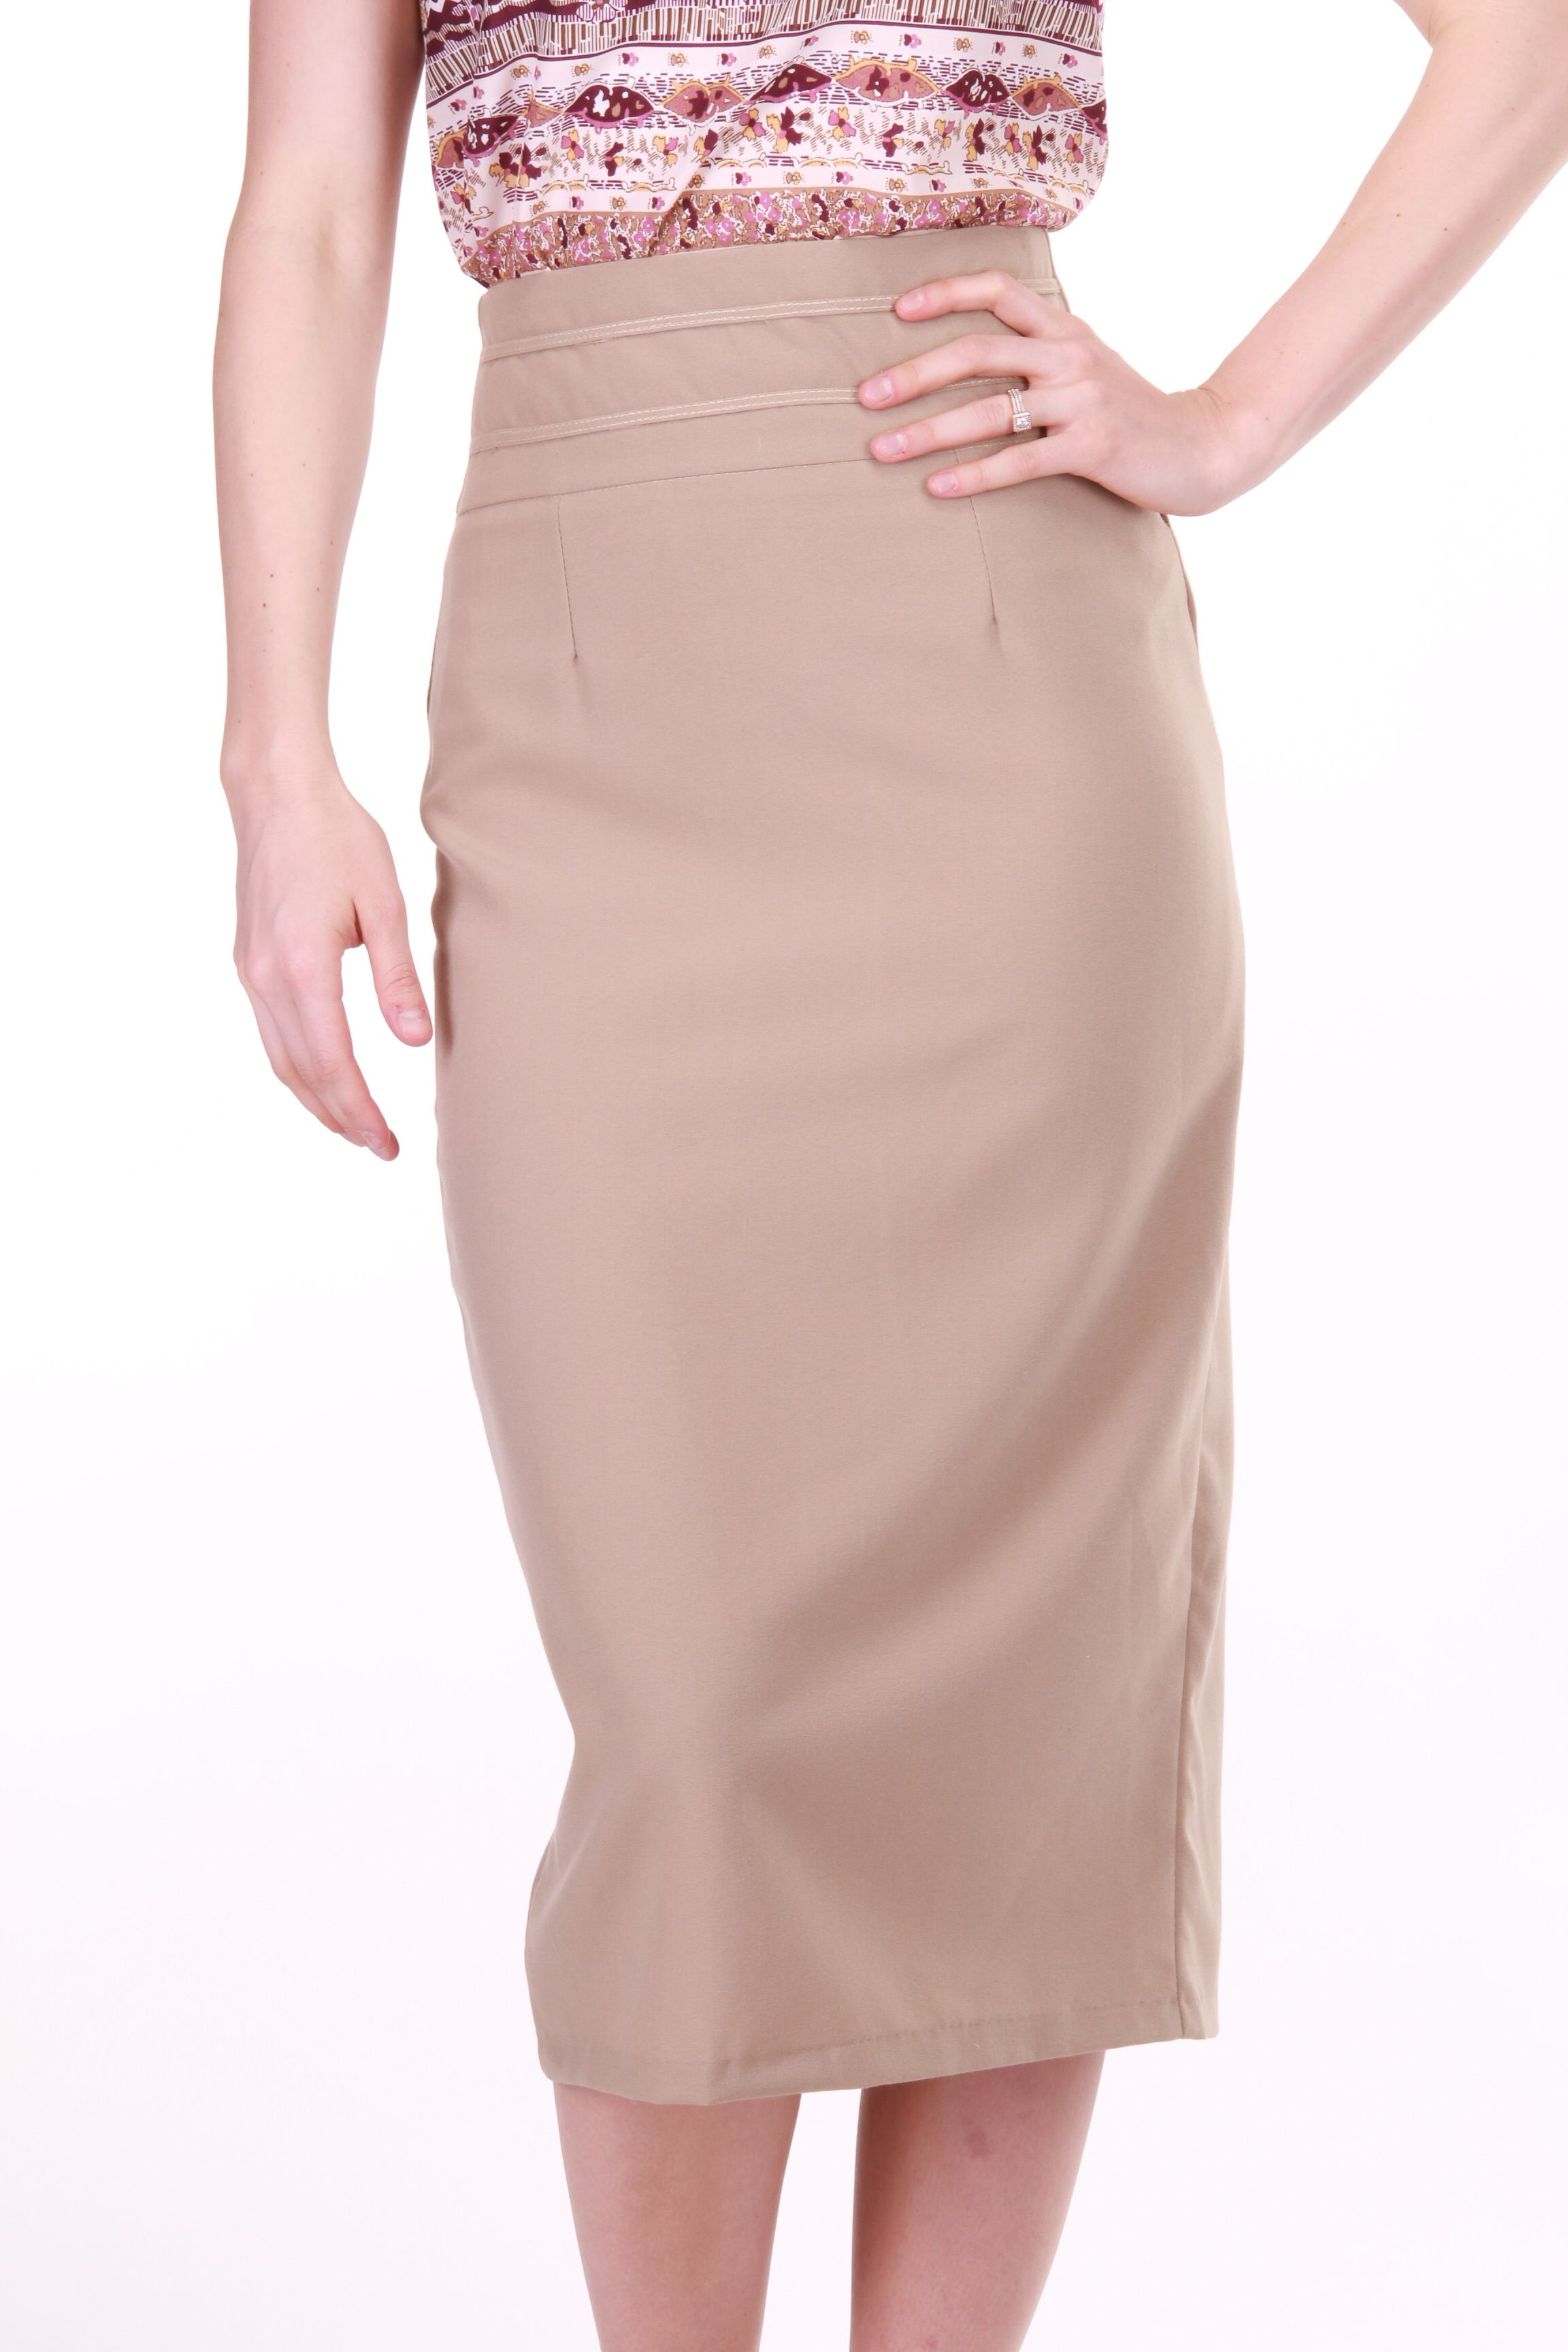 Edyn:High Waisted Pencil Skirt, Tan, S | Wish List | Pinterest ...